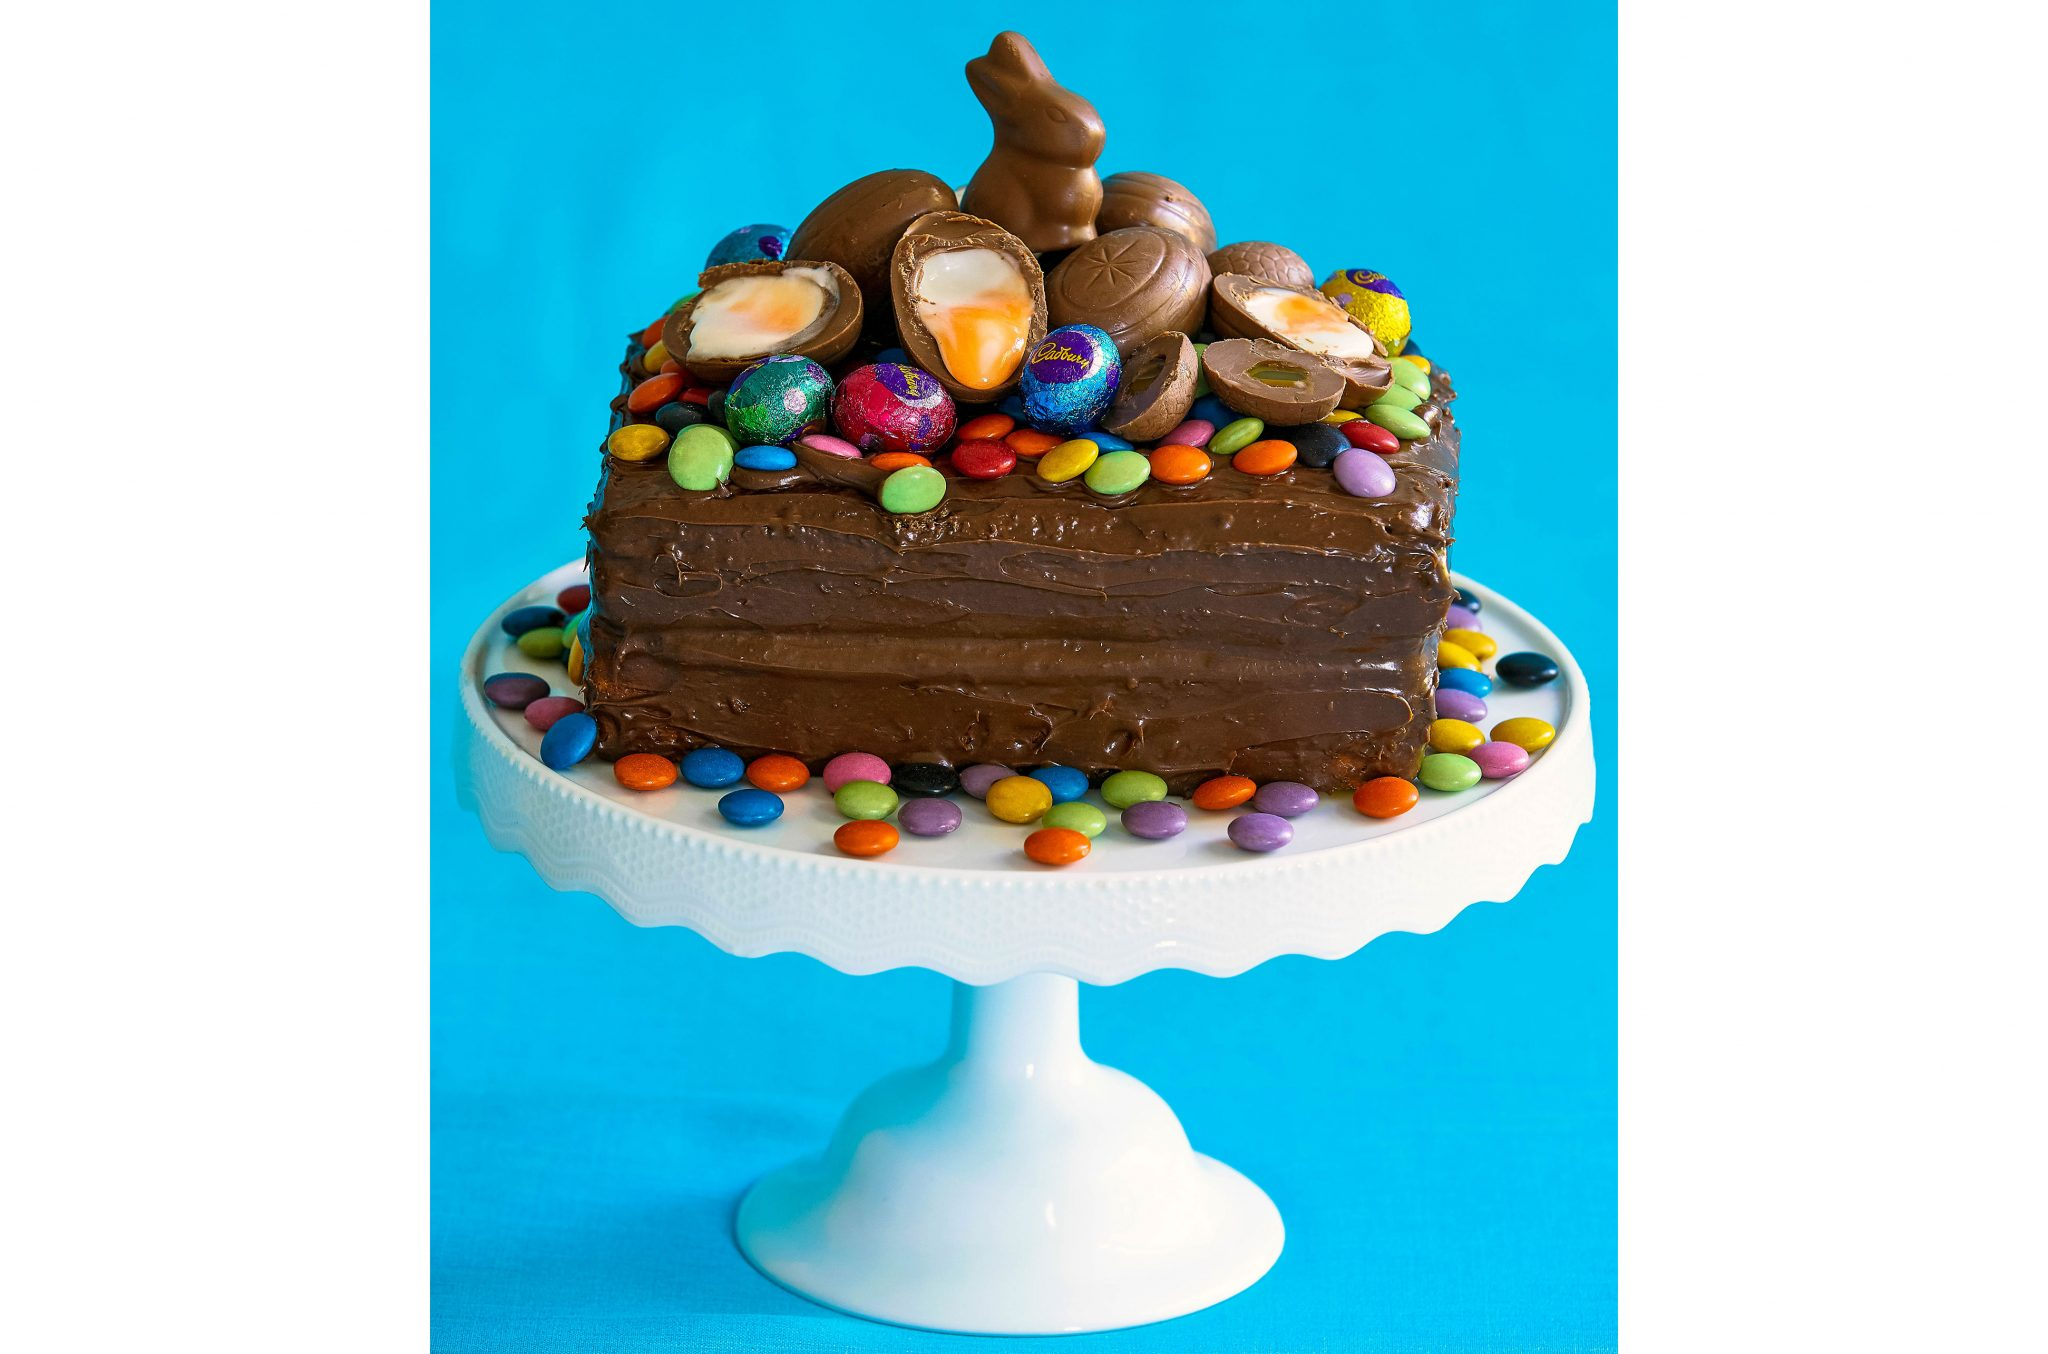 Decadent gluten-free chocolate cake on white cake stand with Easter eggs.